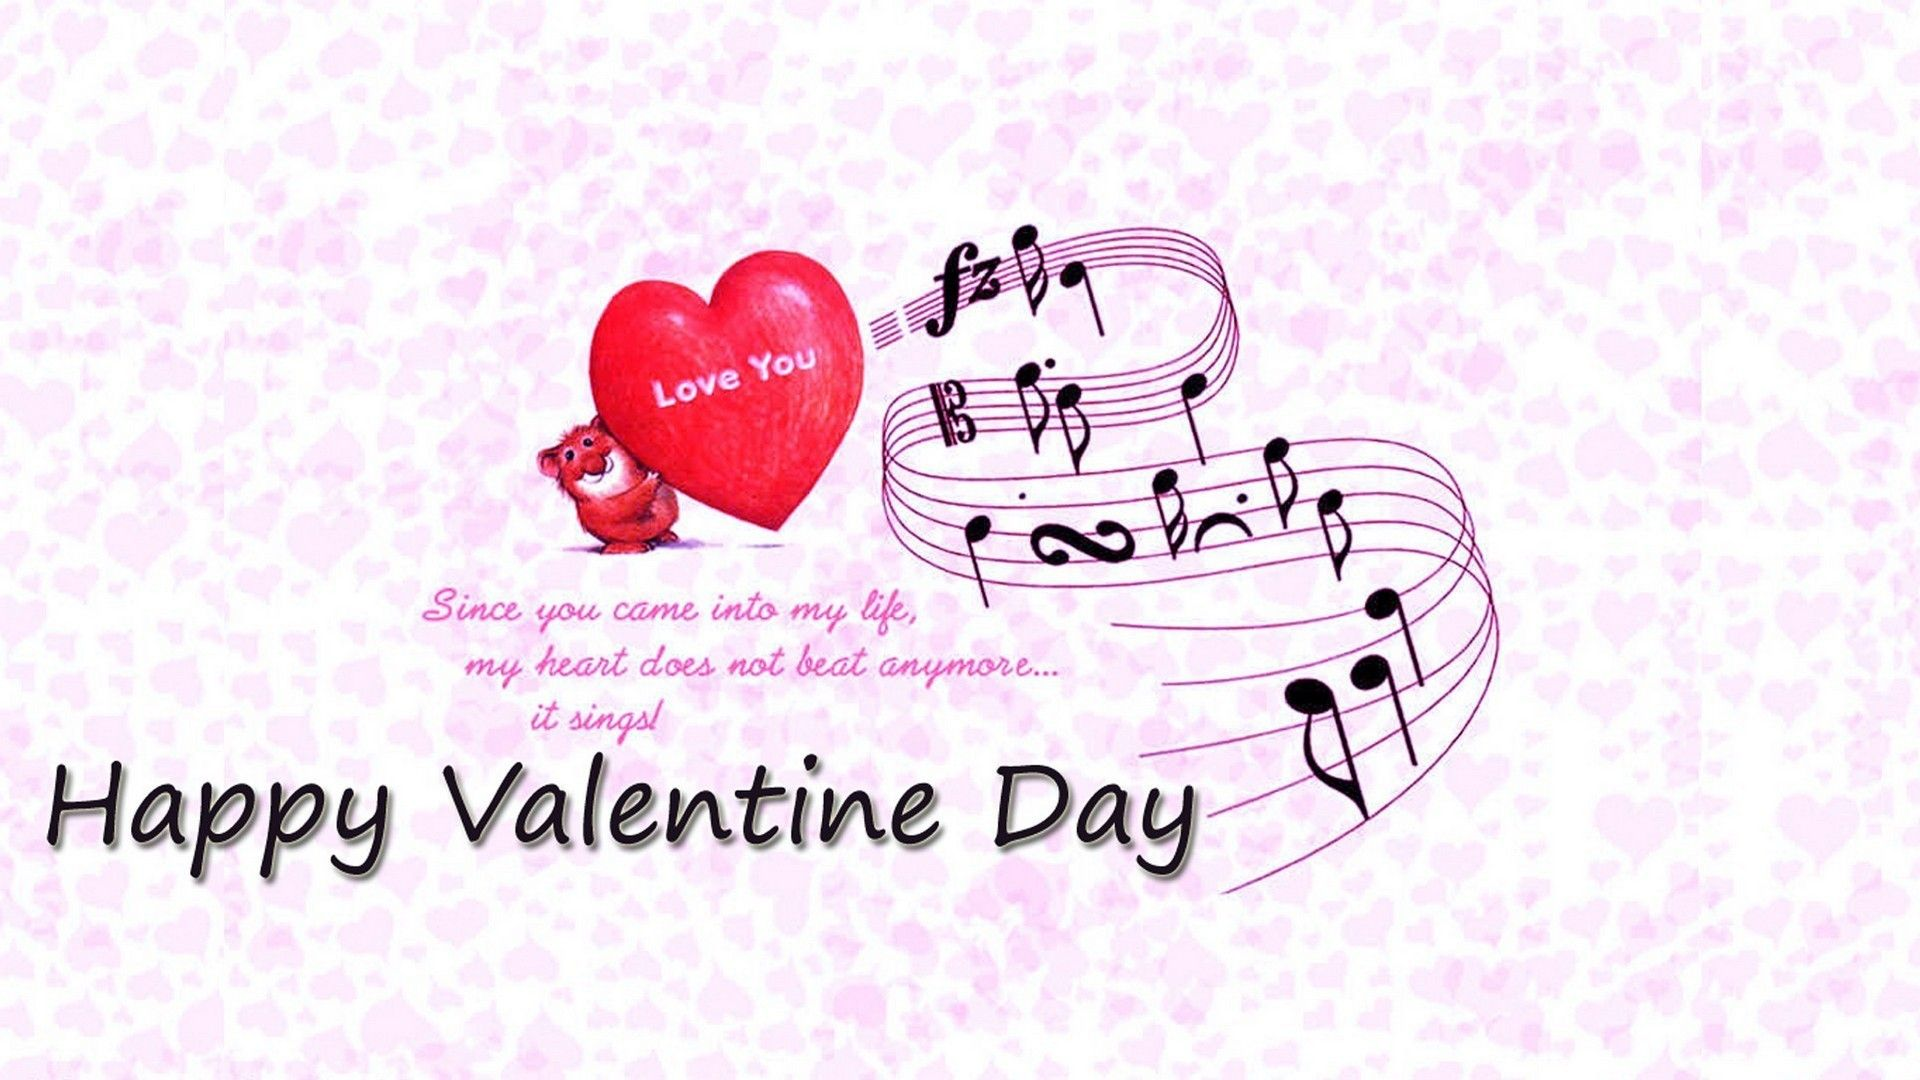 Valentines Day Wallpaper With Quotes 2021 Live Wallpaper Hd Happy Valentine Day Quotes Happy Valentines Day Images Happy Valentine S Day Friend Android wallpaper valentines day 2021